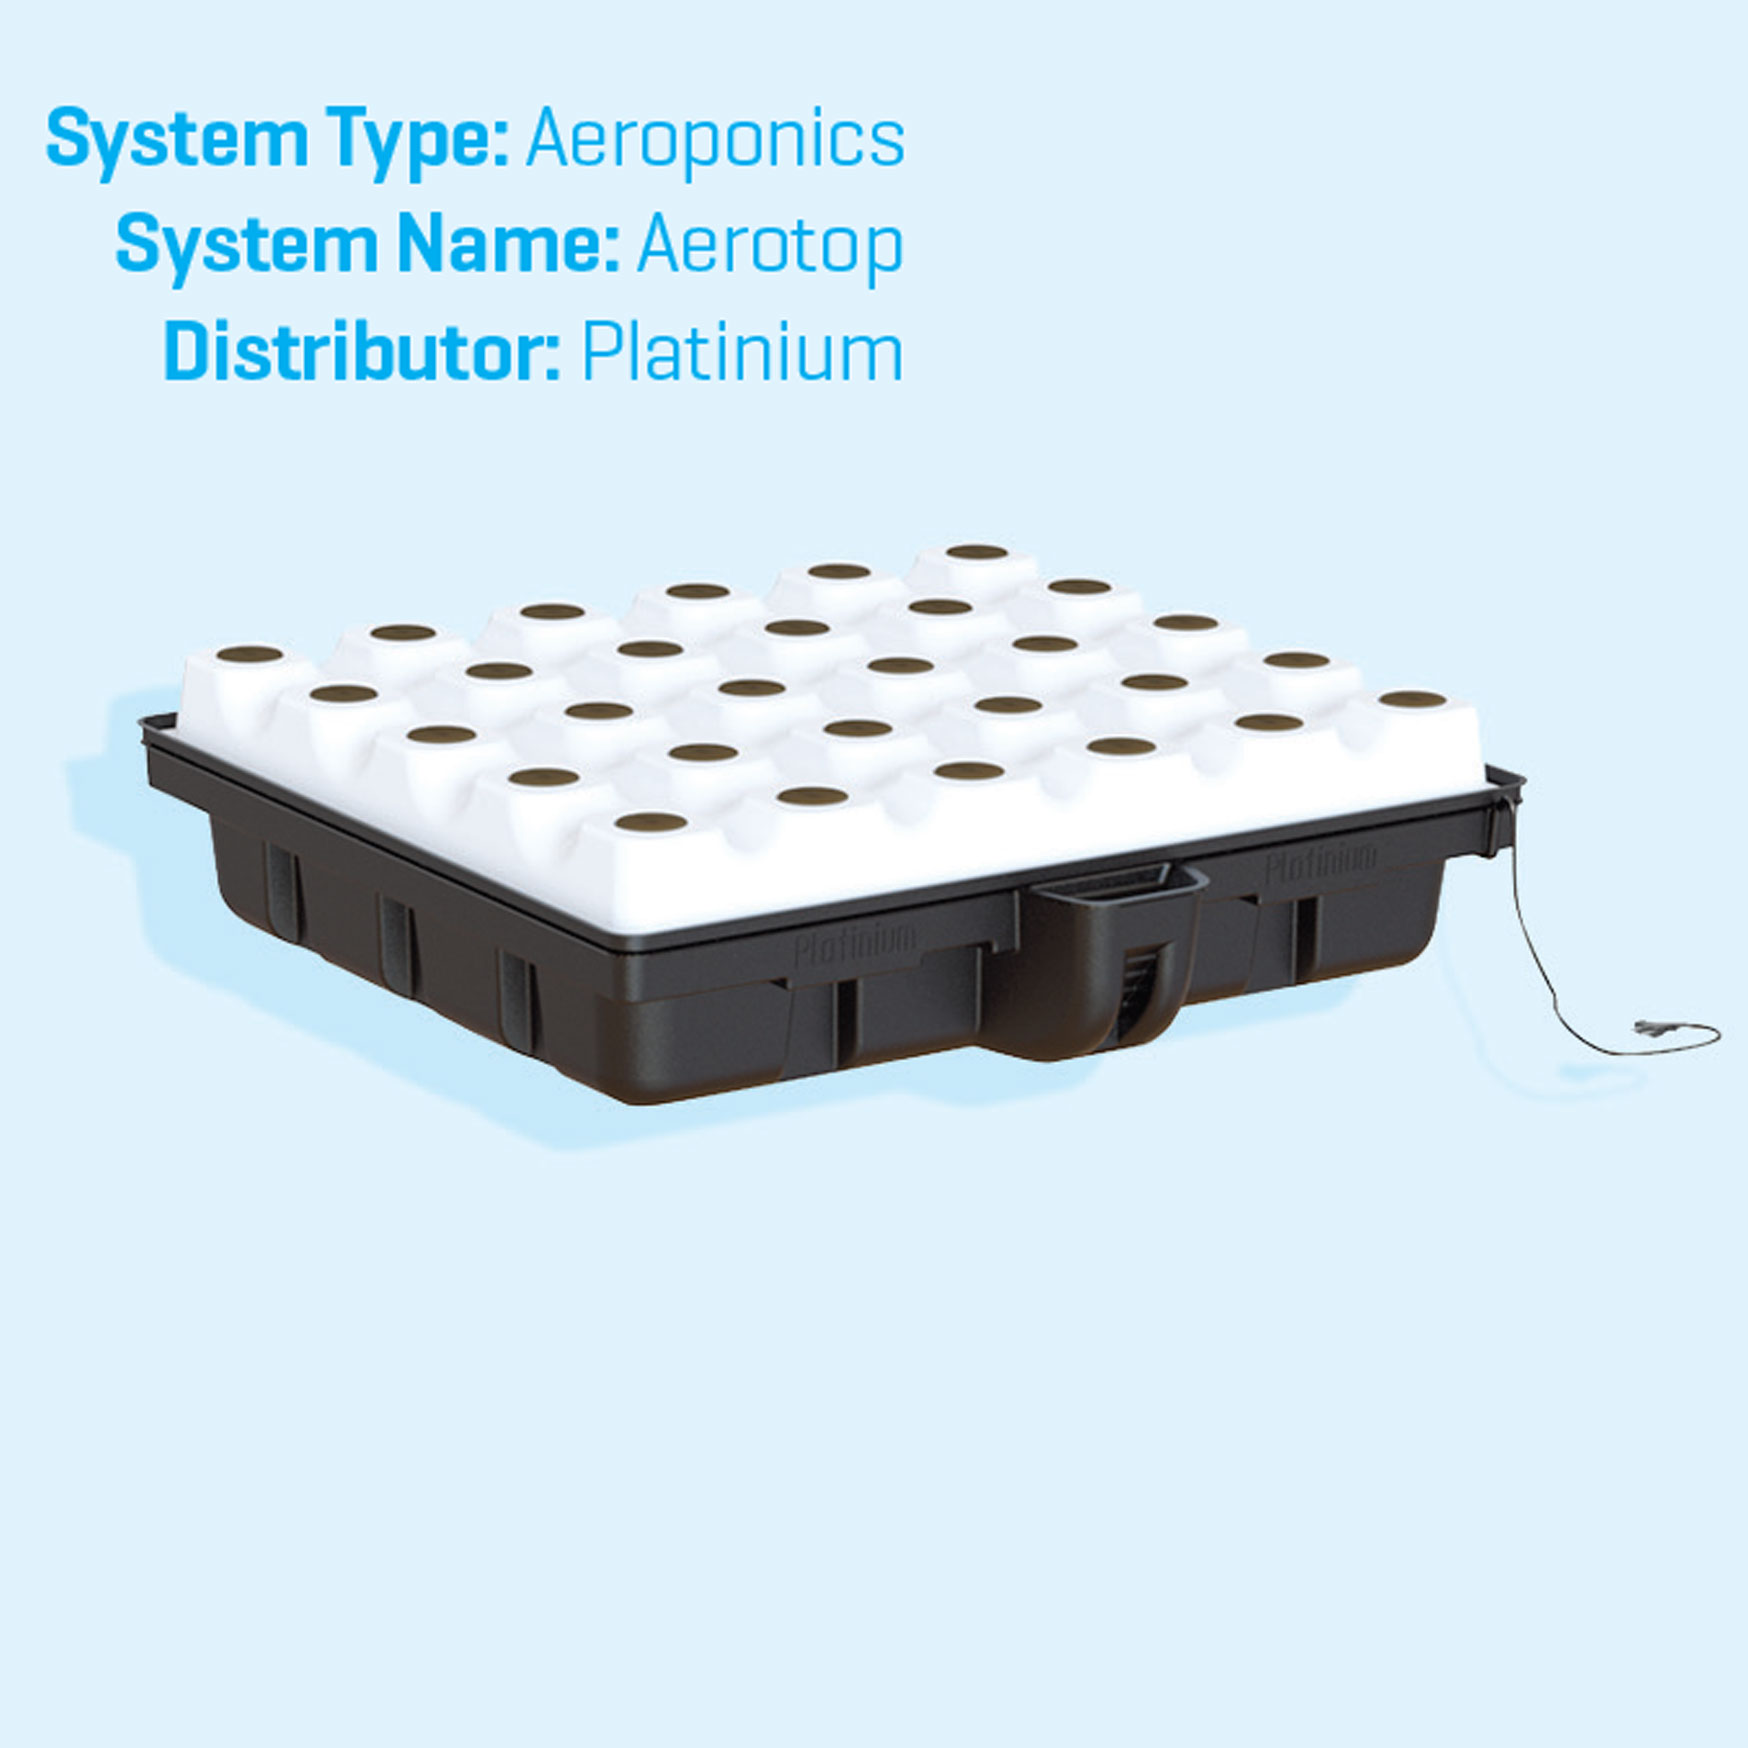 Aeroponic system (Alternative to Hydroponics)